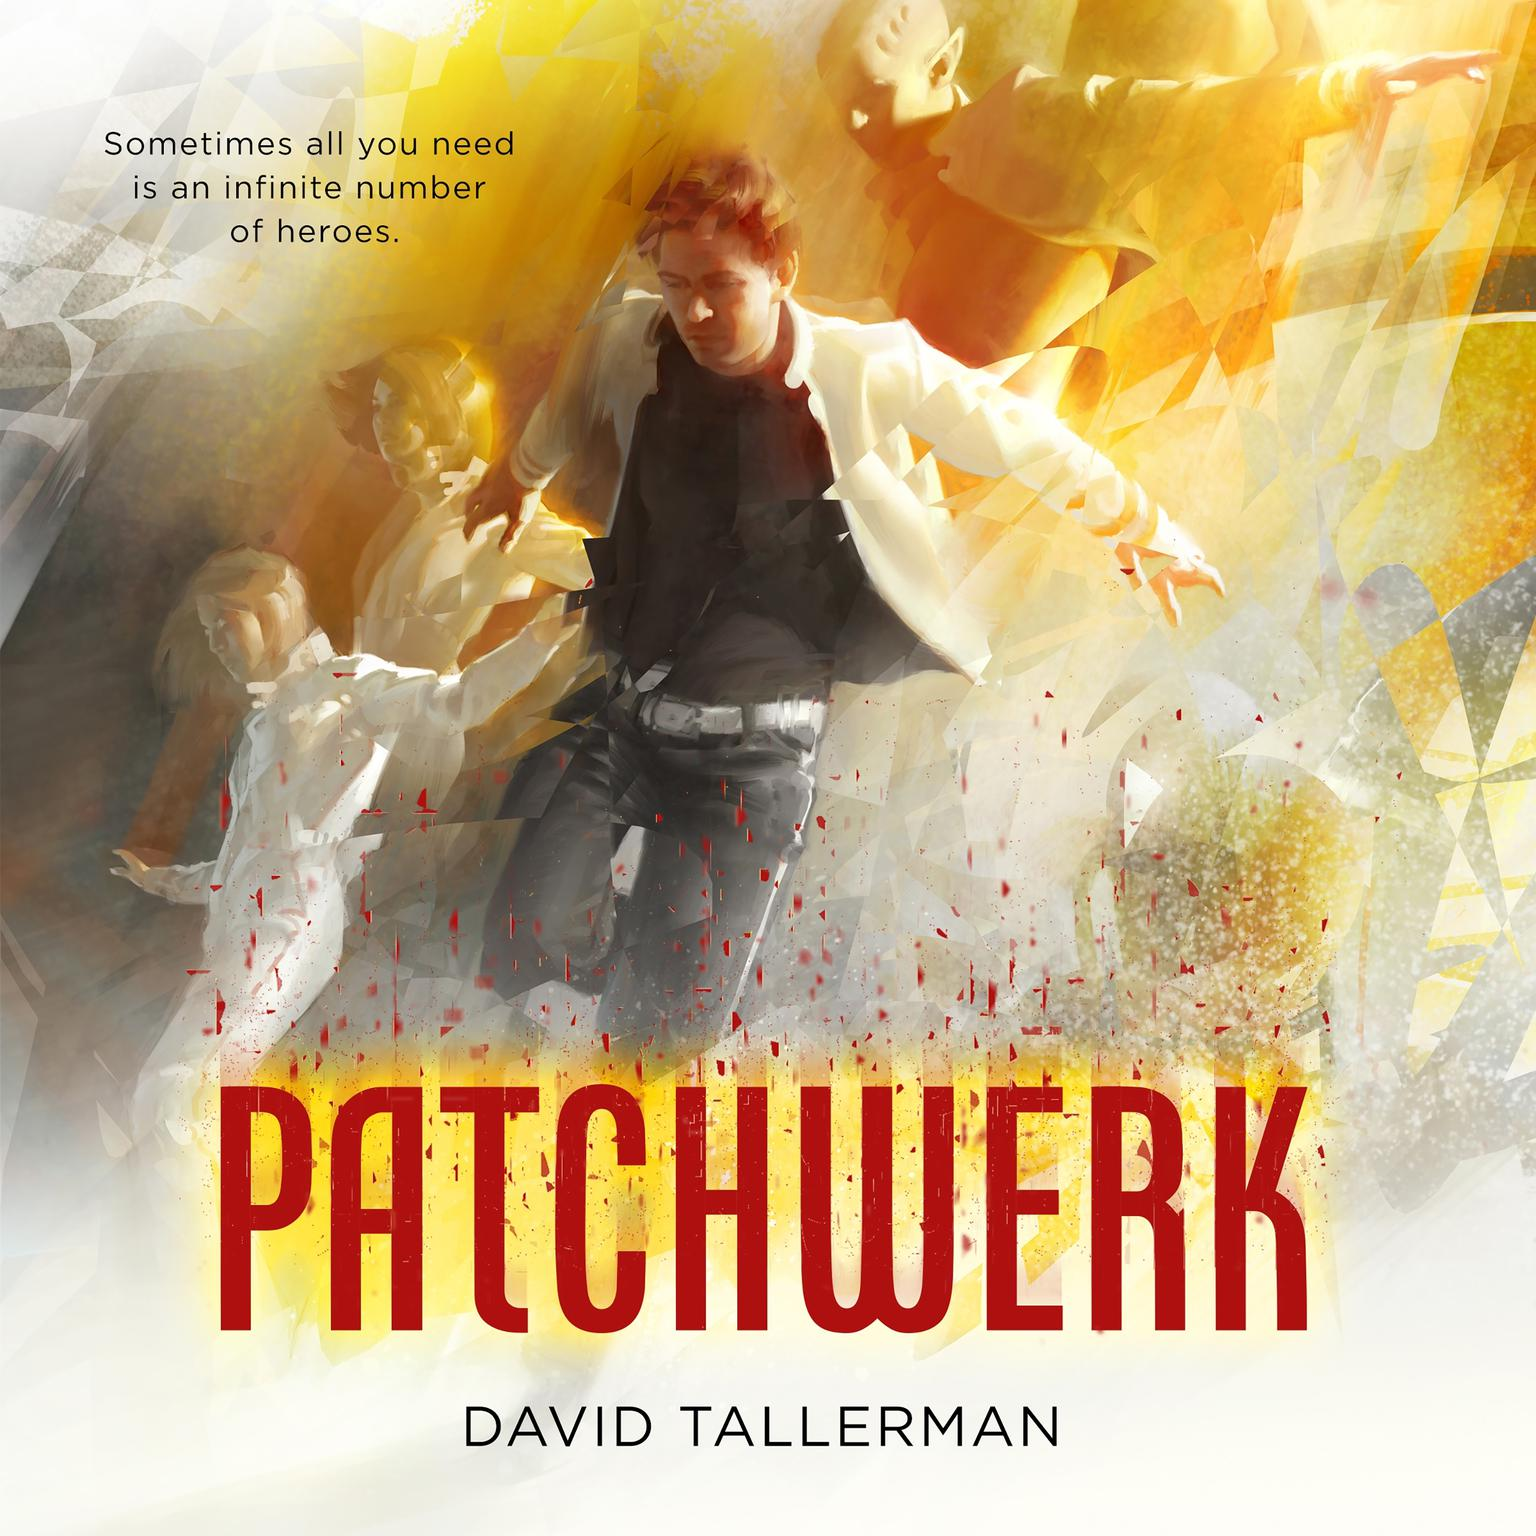 Printable Patchwerk Audiobook Cover Art